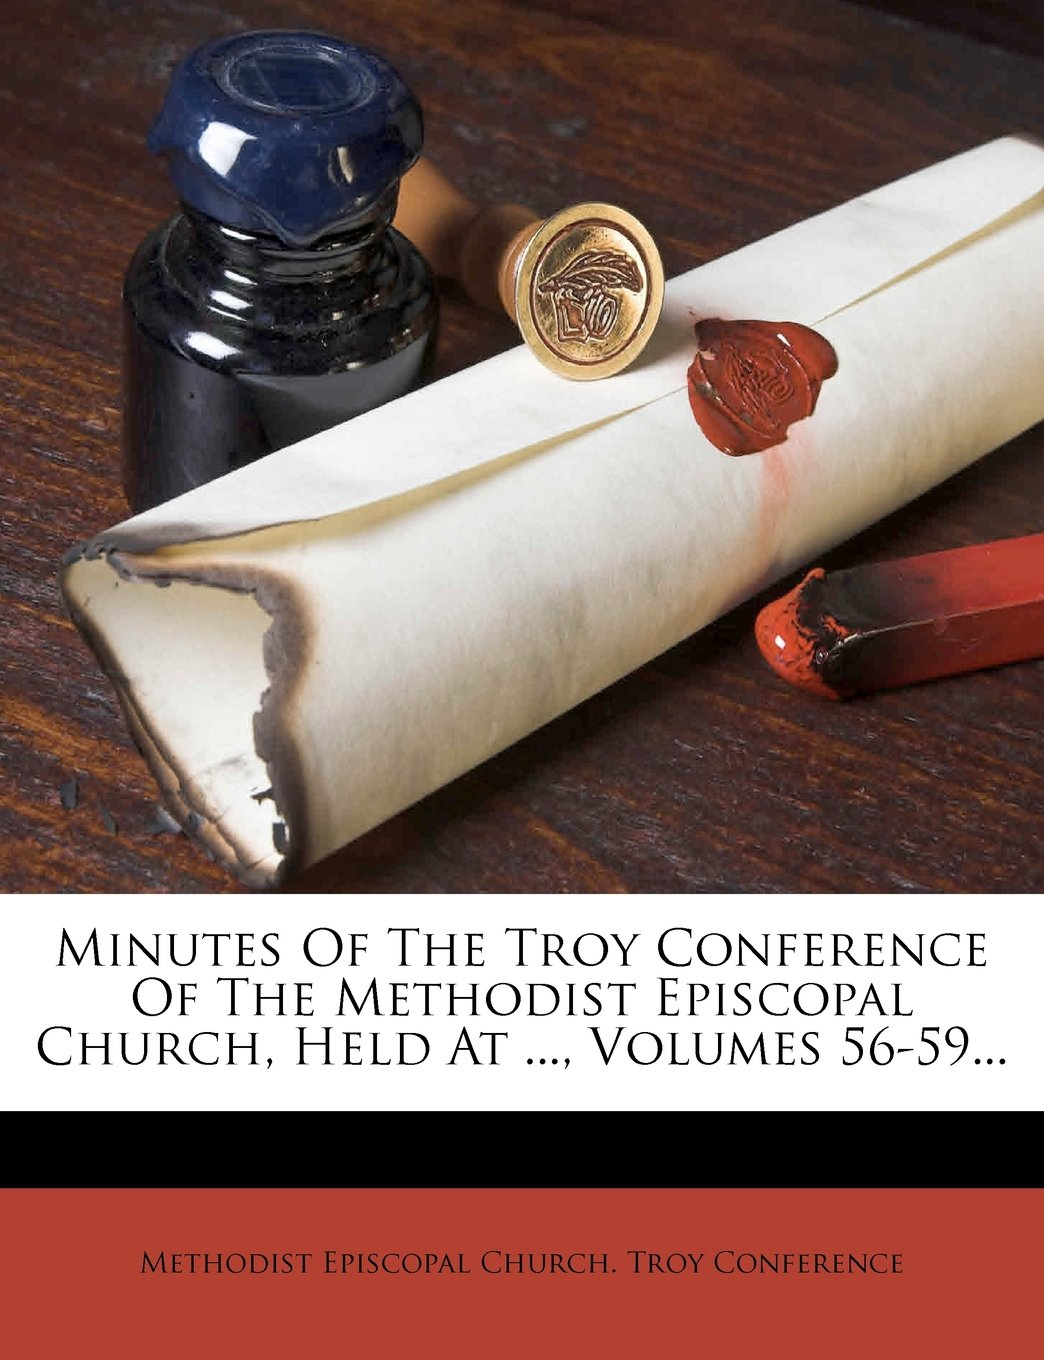 Minutes Of The Troy Conference Of The Methodist Episcopal Church, Held At ..., Volumes 56-59... pdf